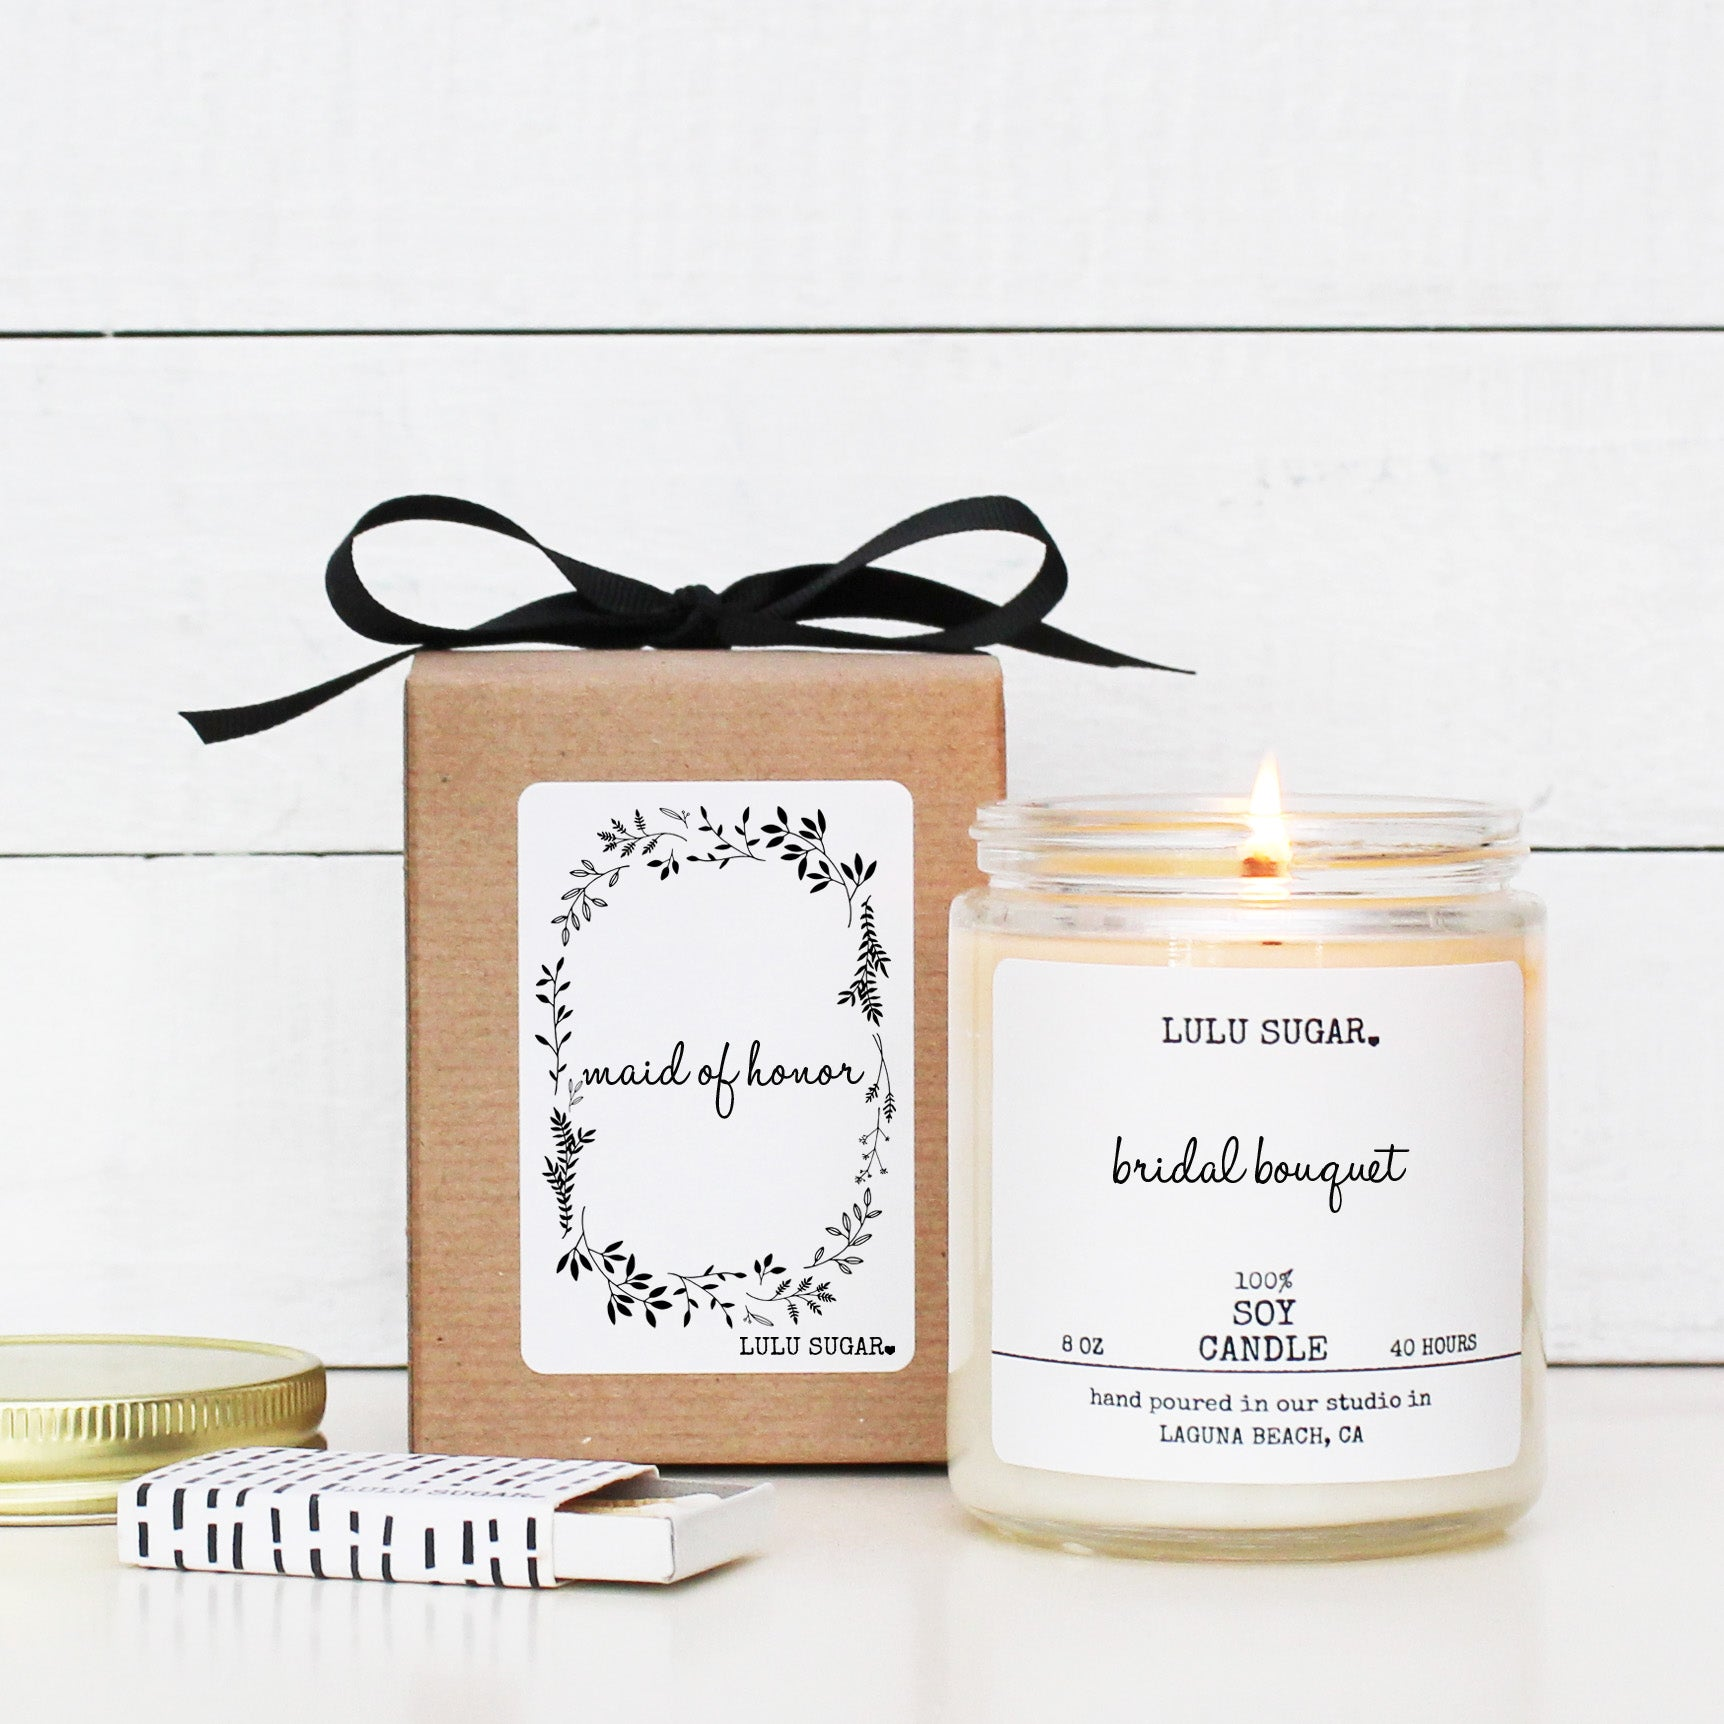 Maid of Honor Gift - Soy Candles